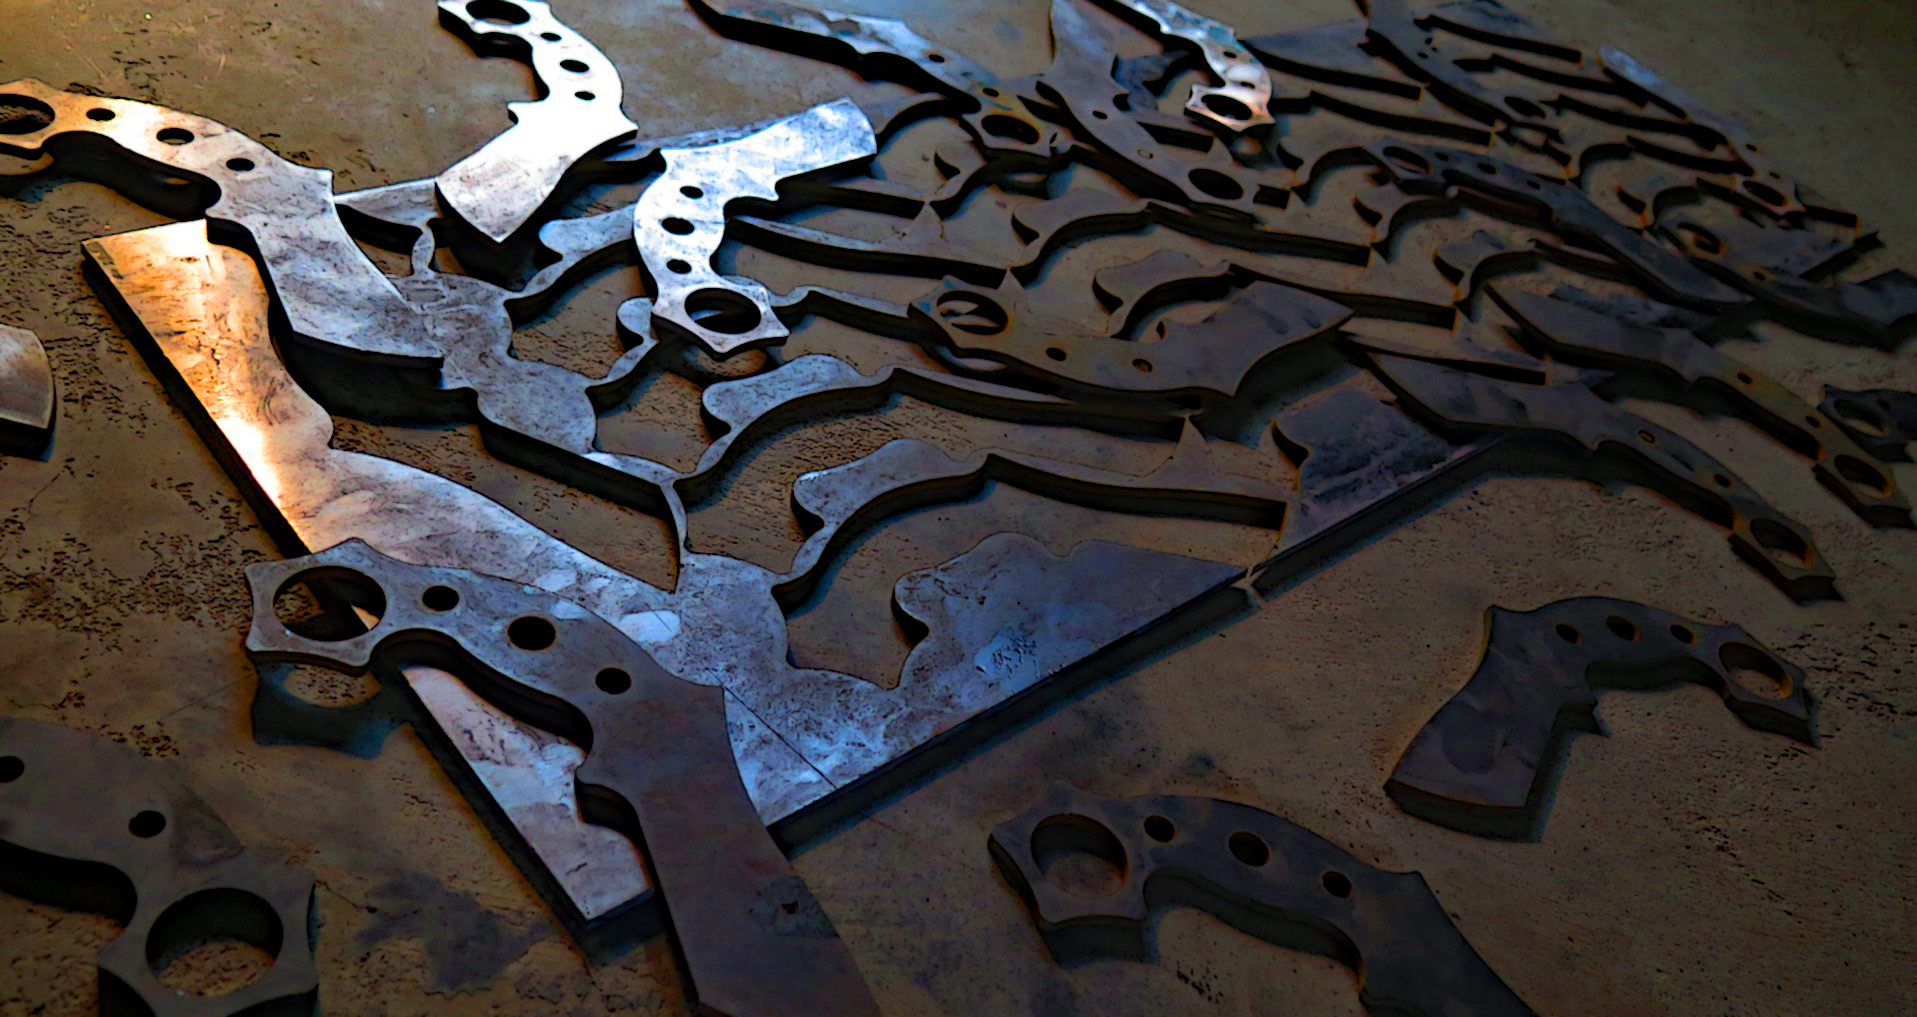 Mandrill blanks from the waterjet.